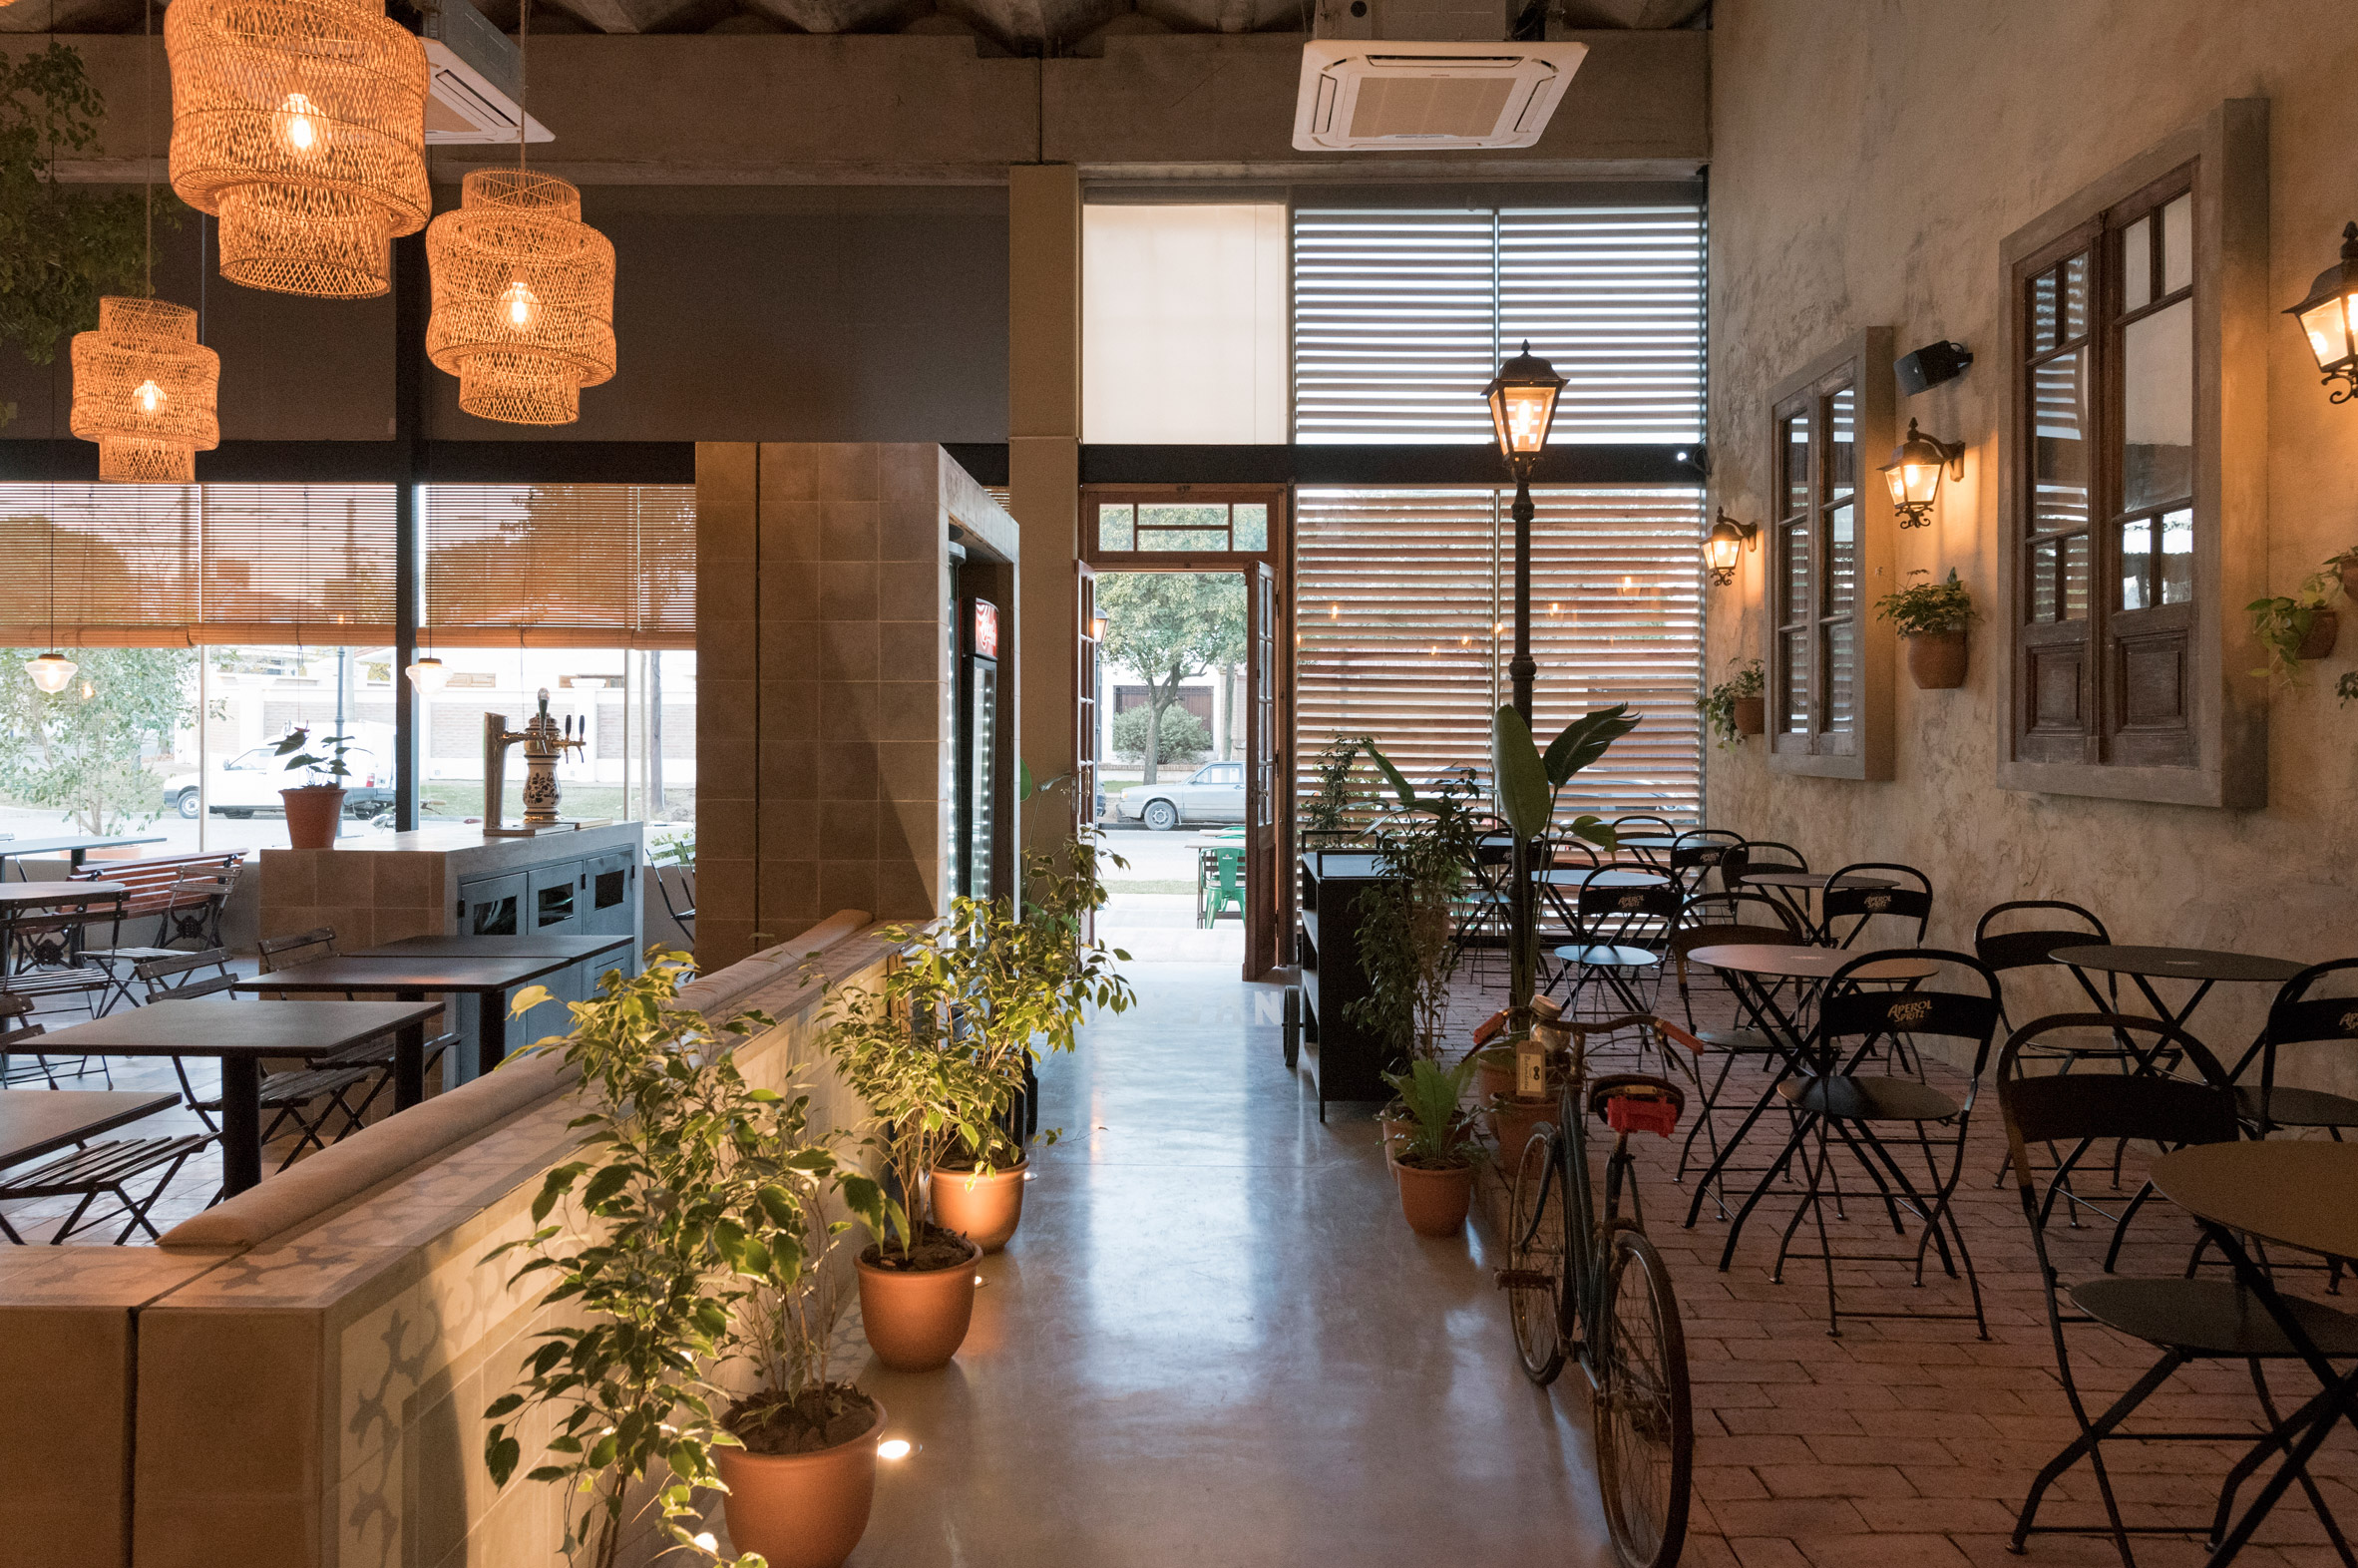 Pigmento Experimenta infuses Pan Plano pizzeria in Argentina with rustic charm